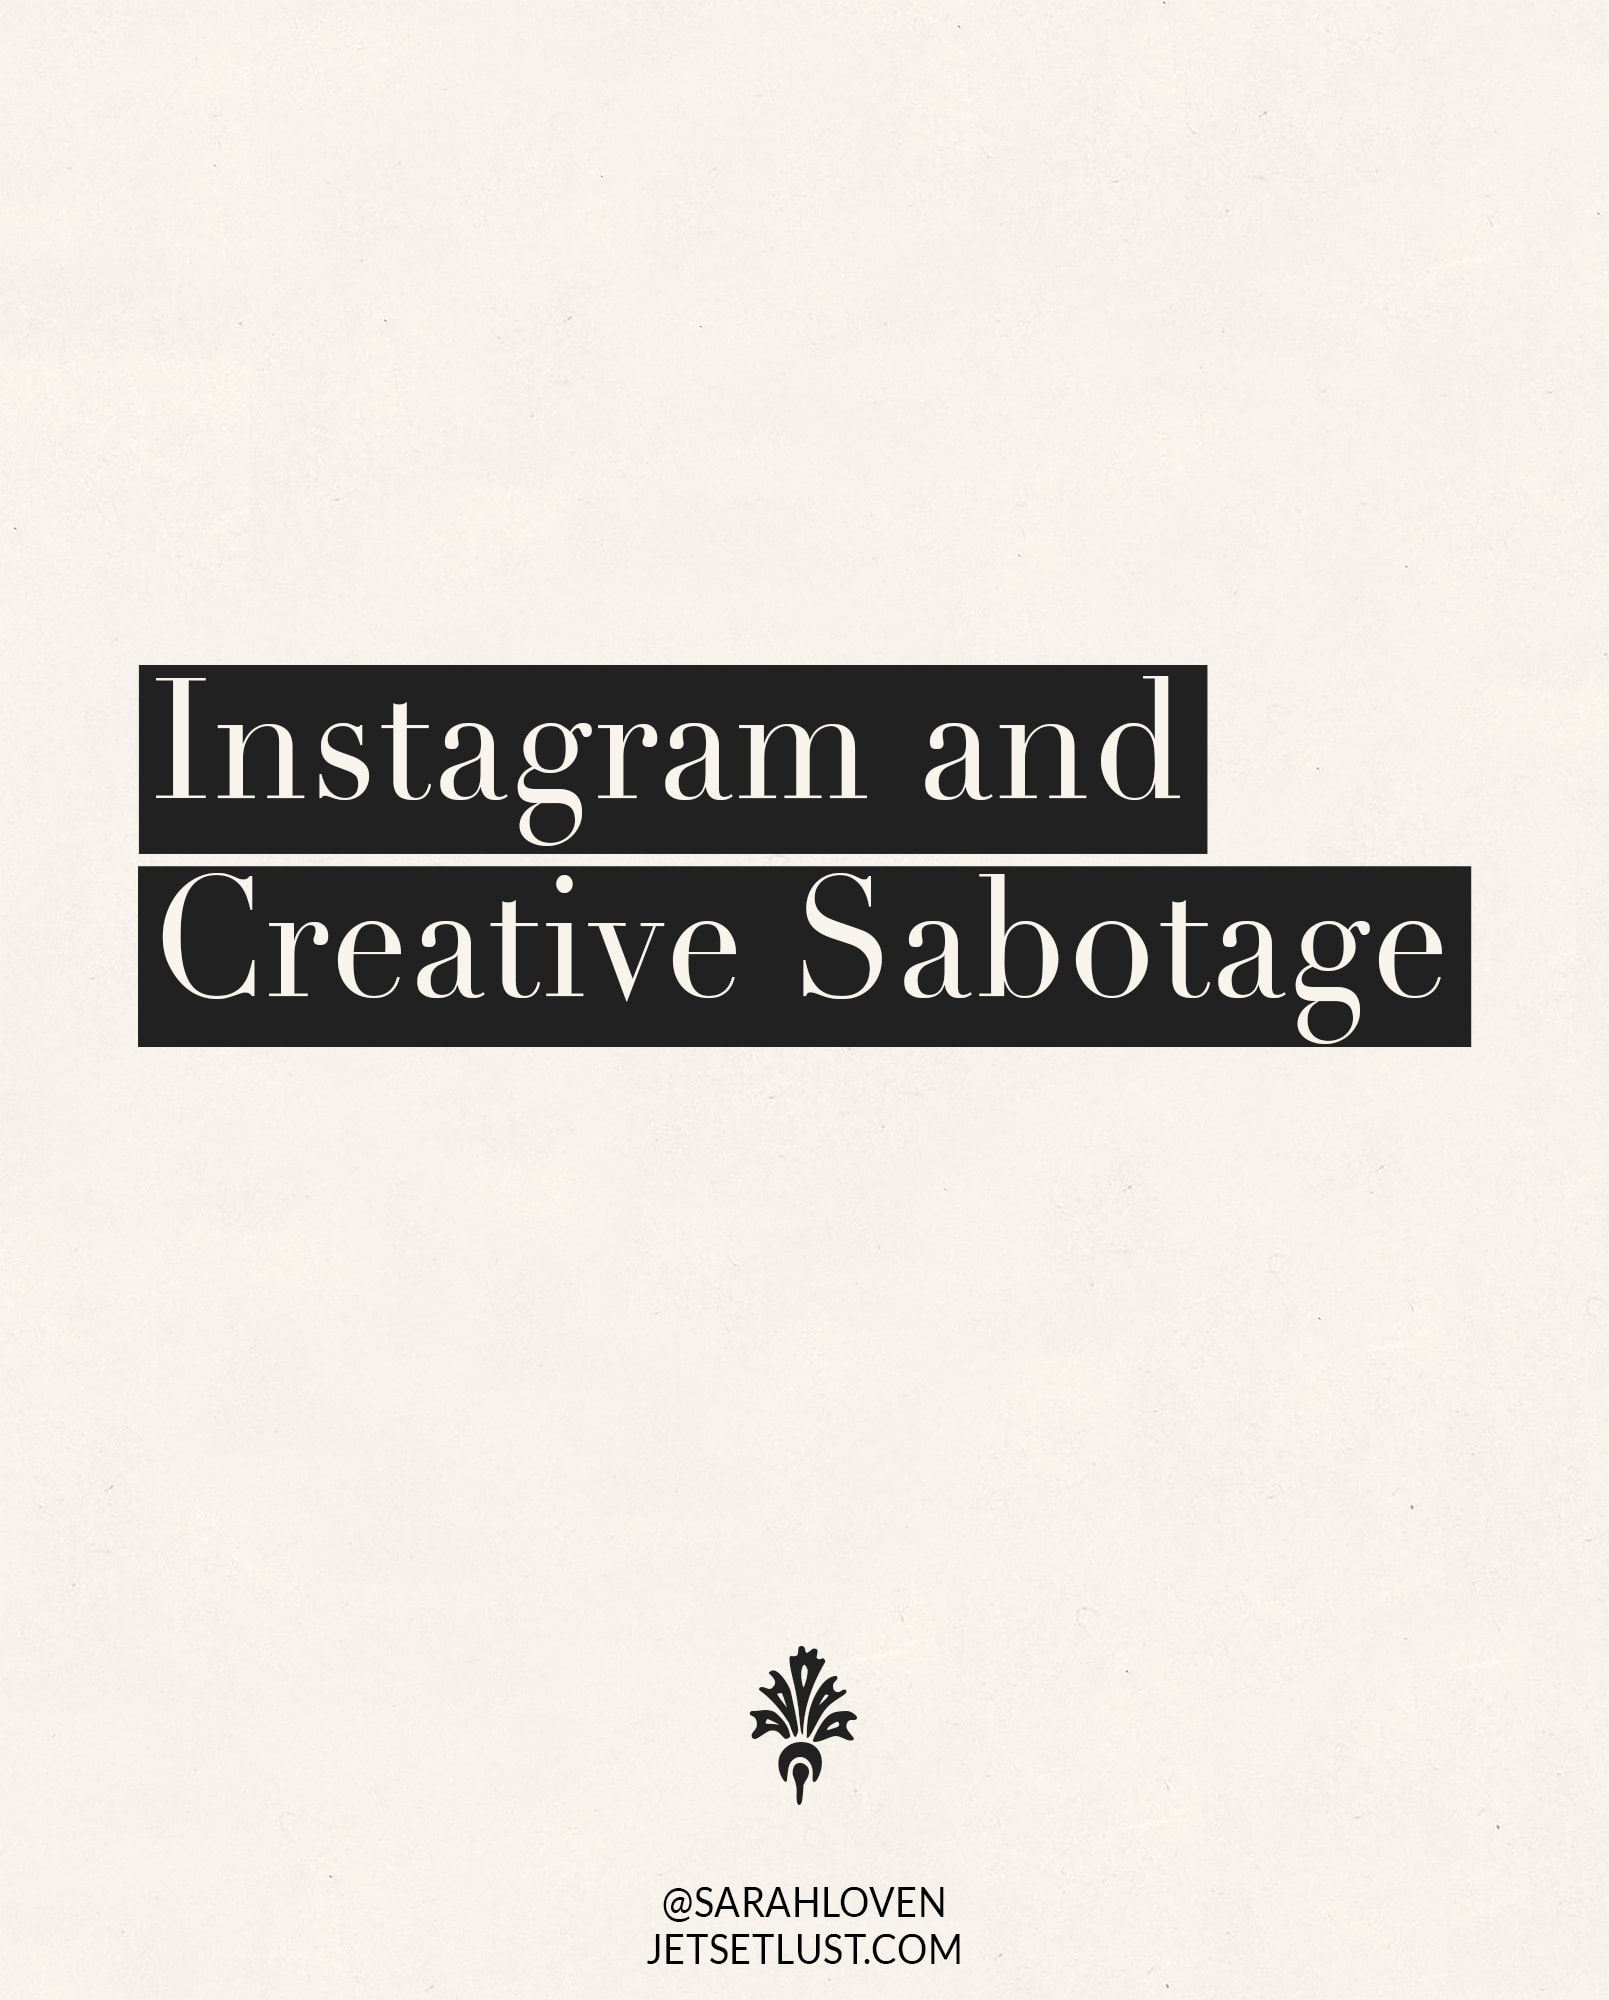 Instagram and Creative Sabotage.